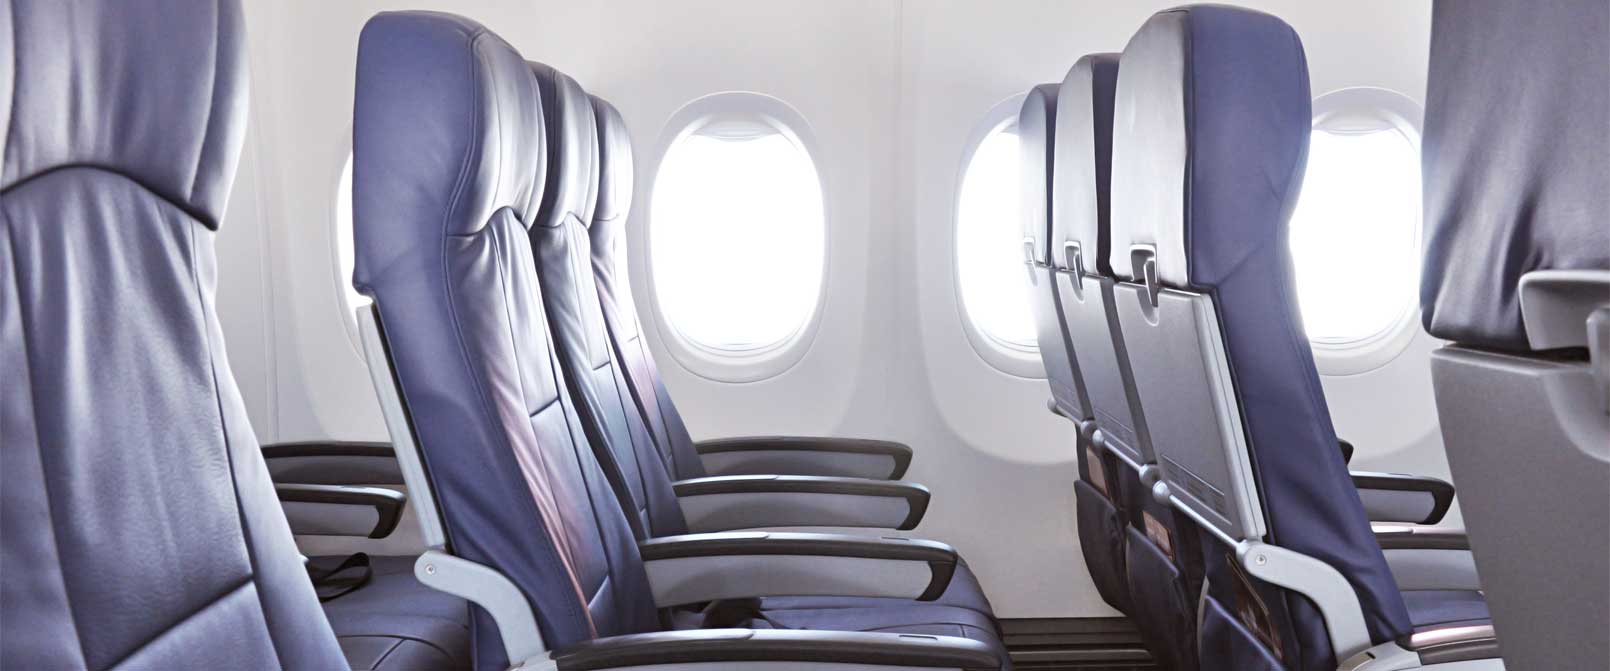 Airline Seating Suspension